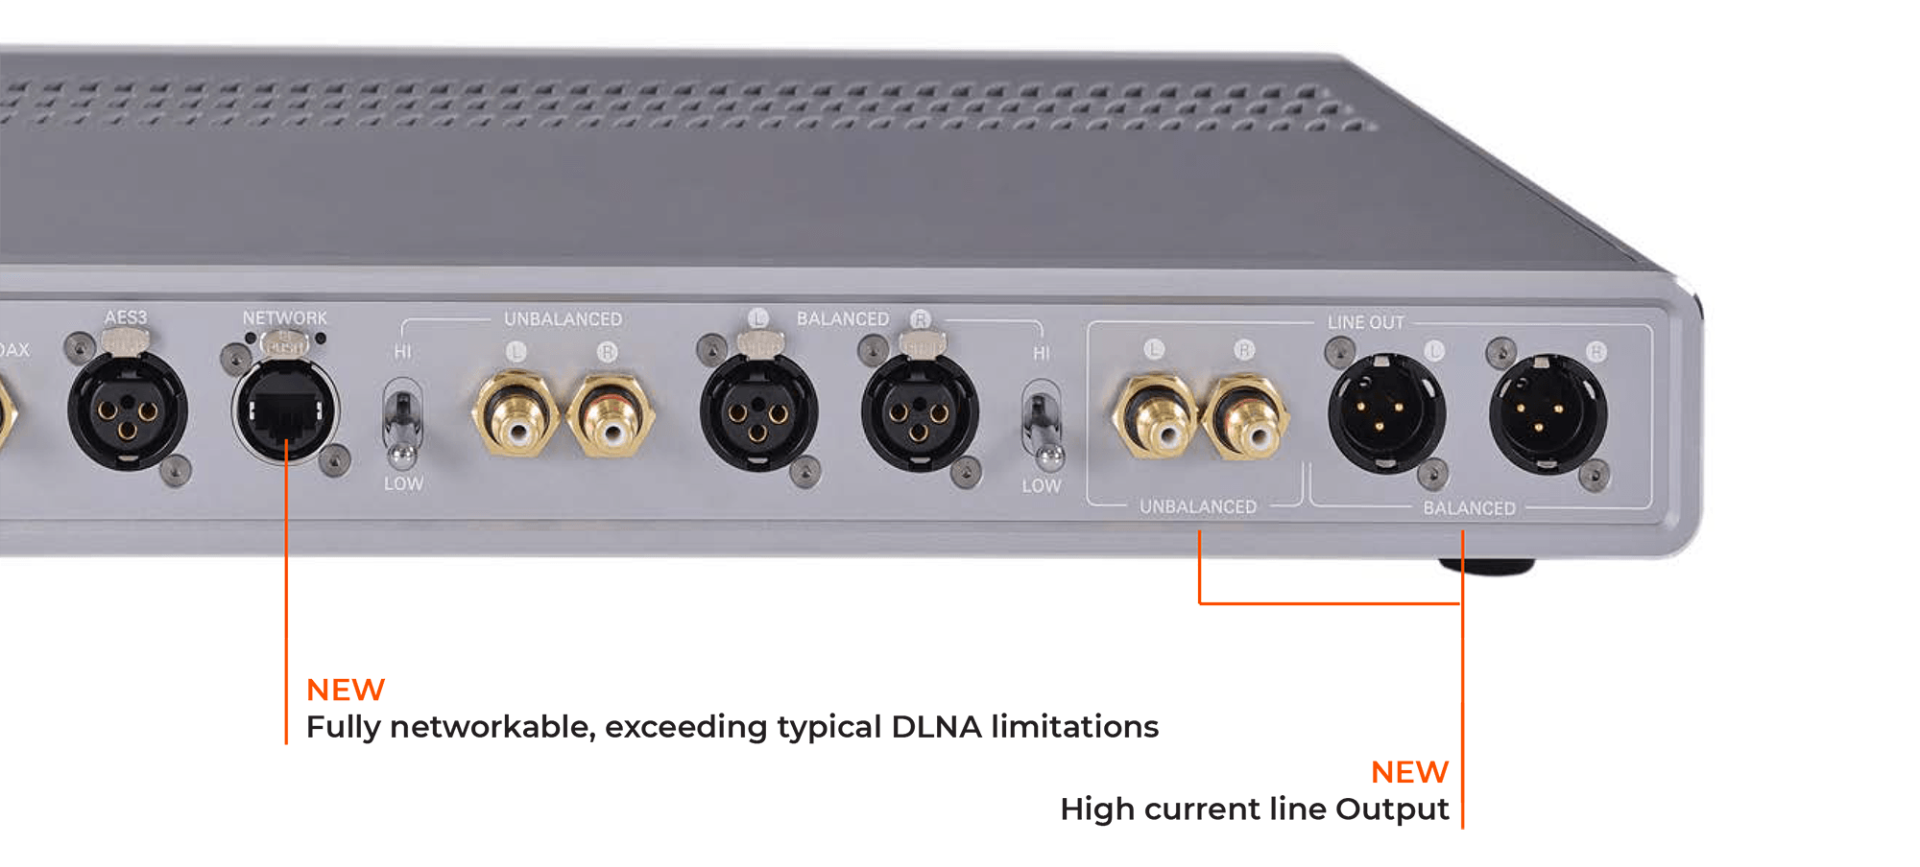 Warwick Aperio with new fully networkable DLNA limitations and high current line output